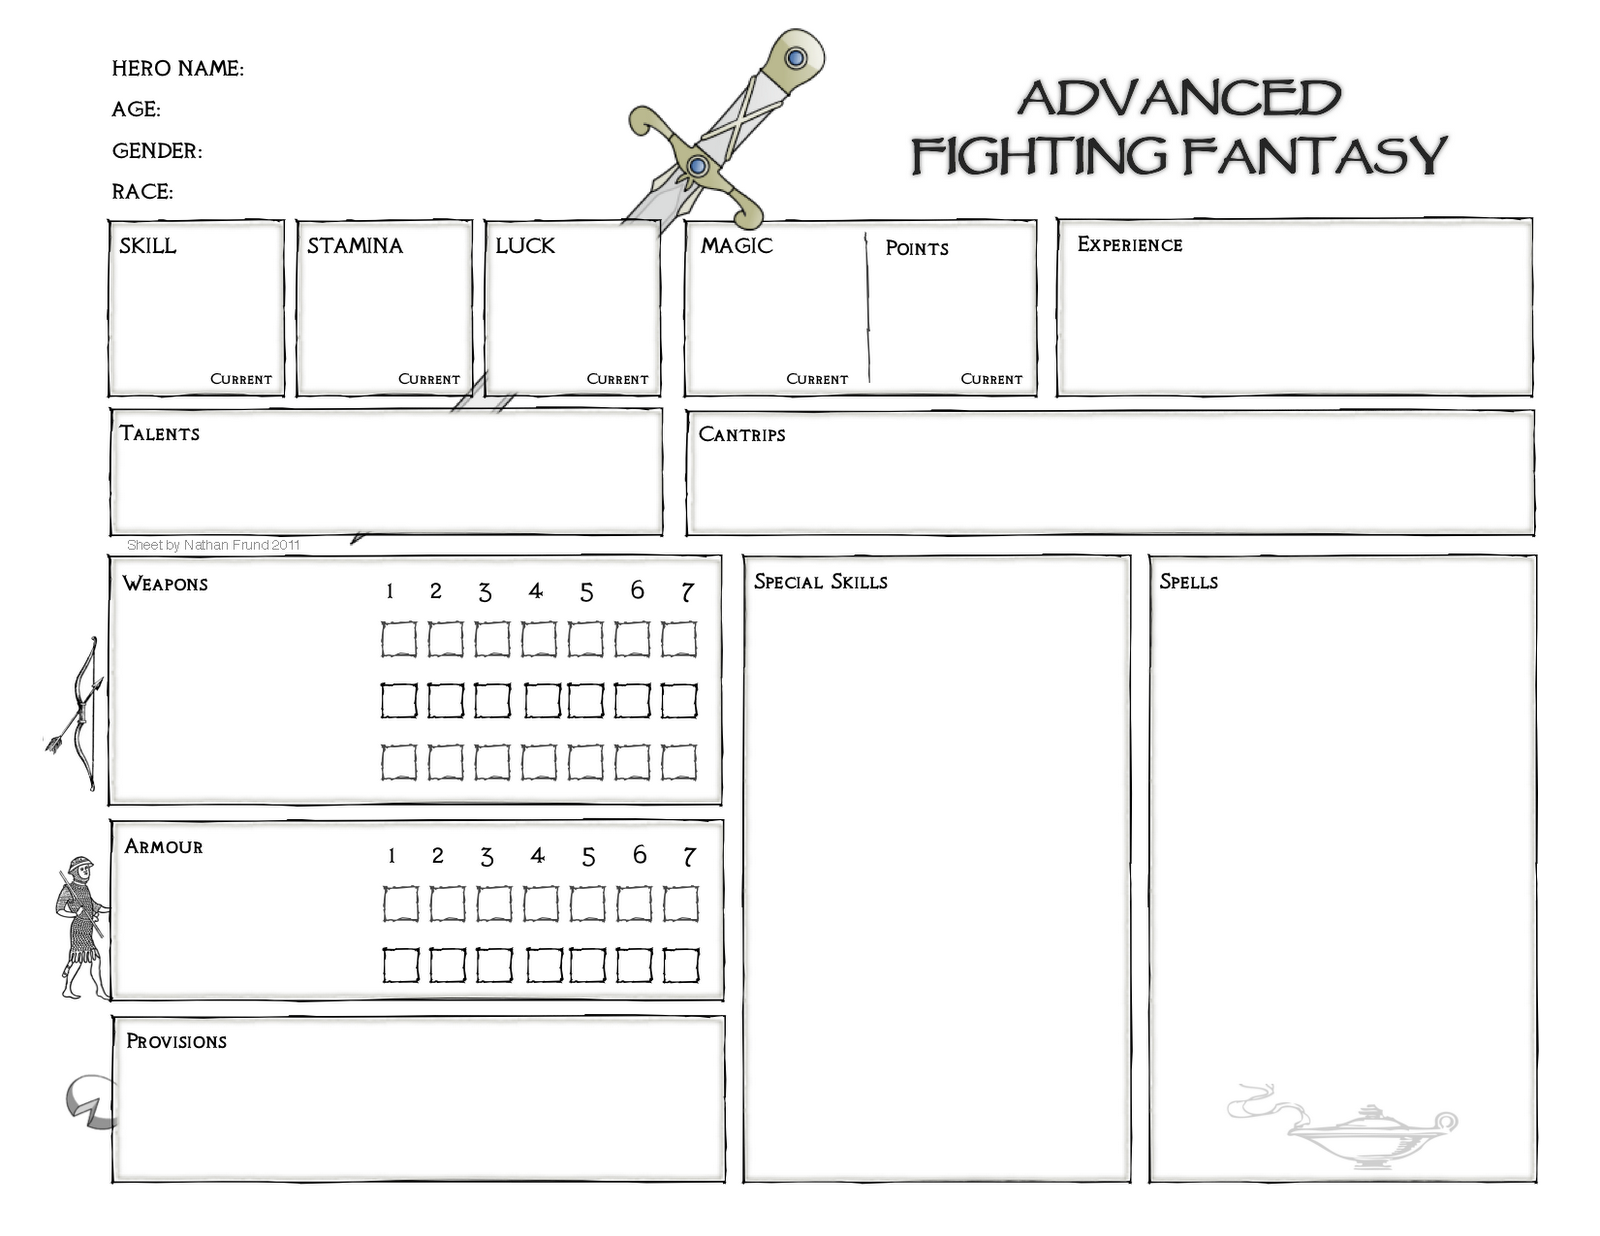 Advanced Fighting Fantasy Character Sheet Platonic Solid